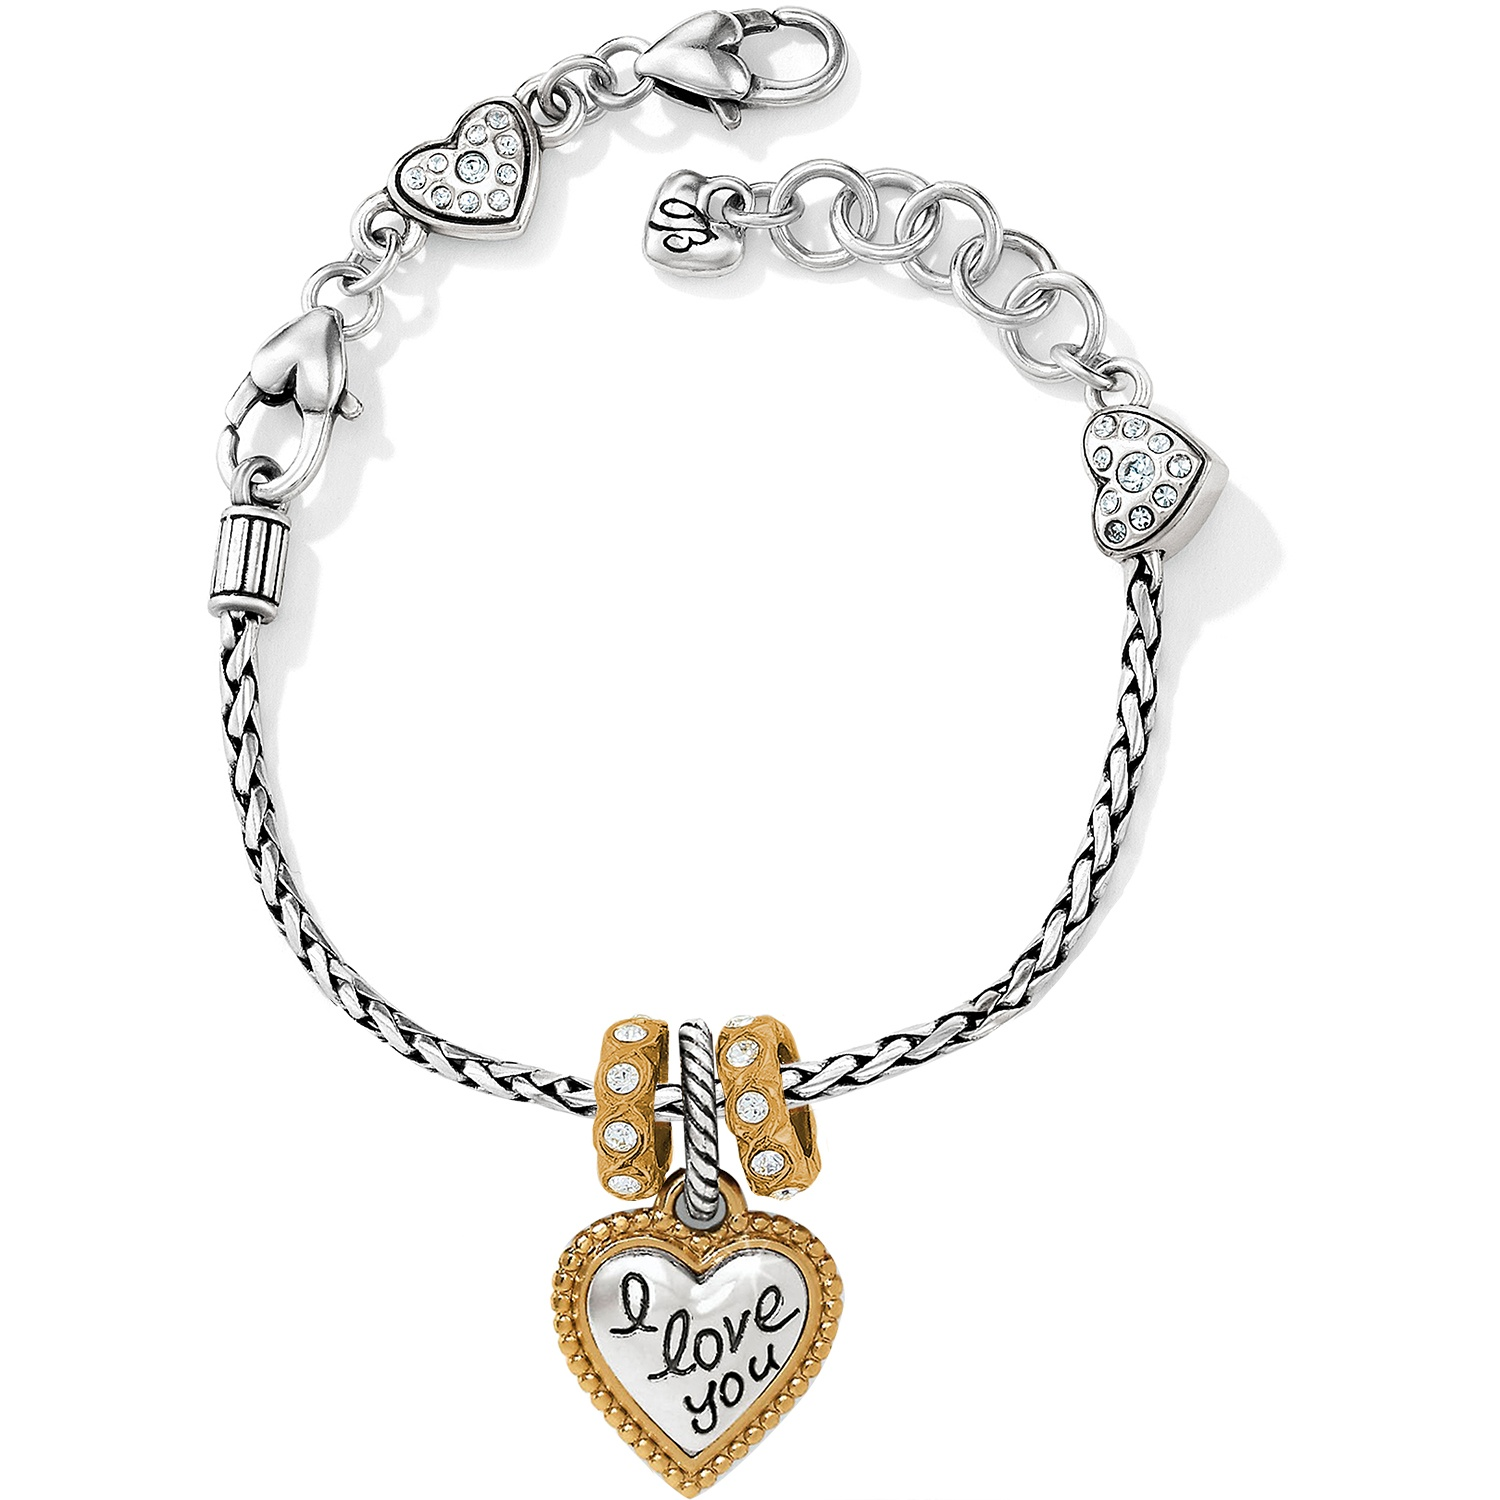 I Love You Charm Bracelet Charm Idea Lab